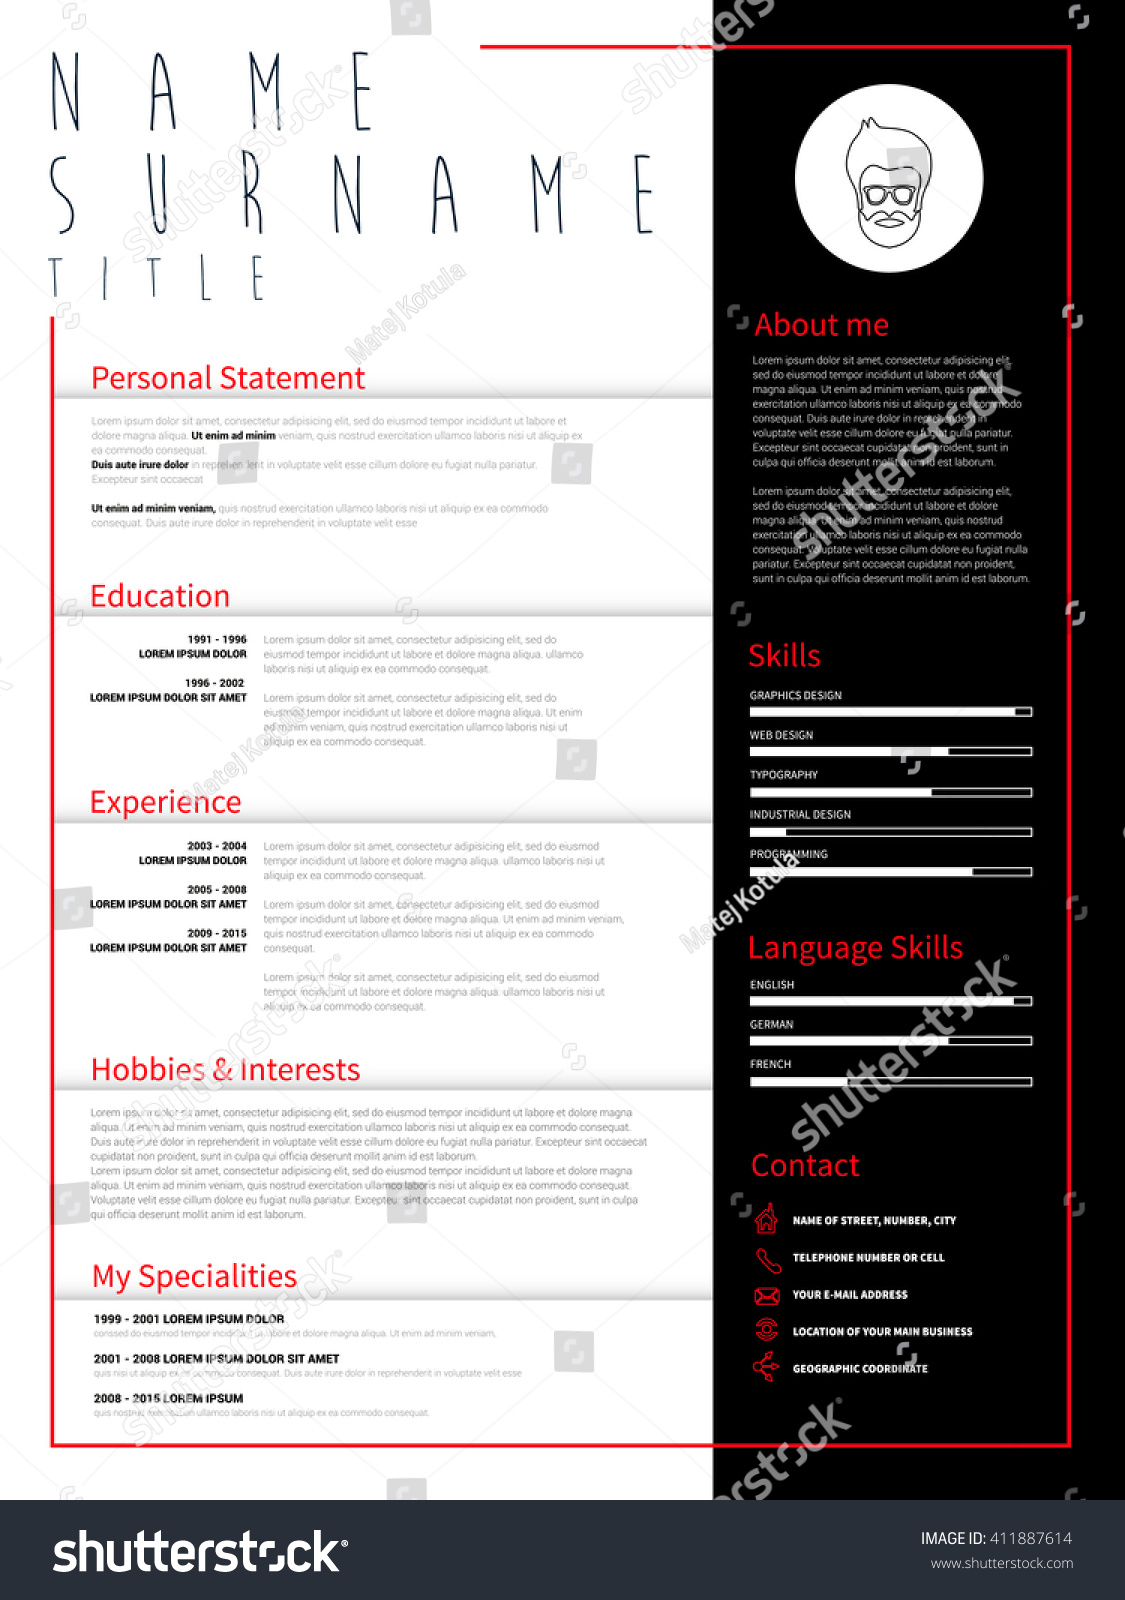 Minimalist Cv Resume Template Simple Design Stock Photo Photo